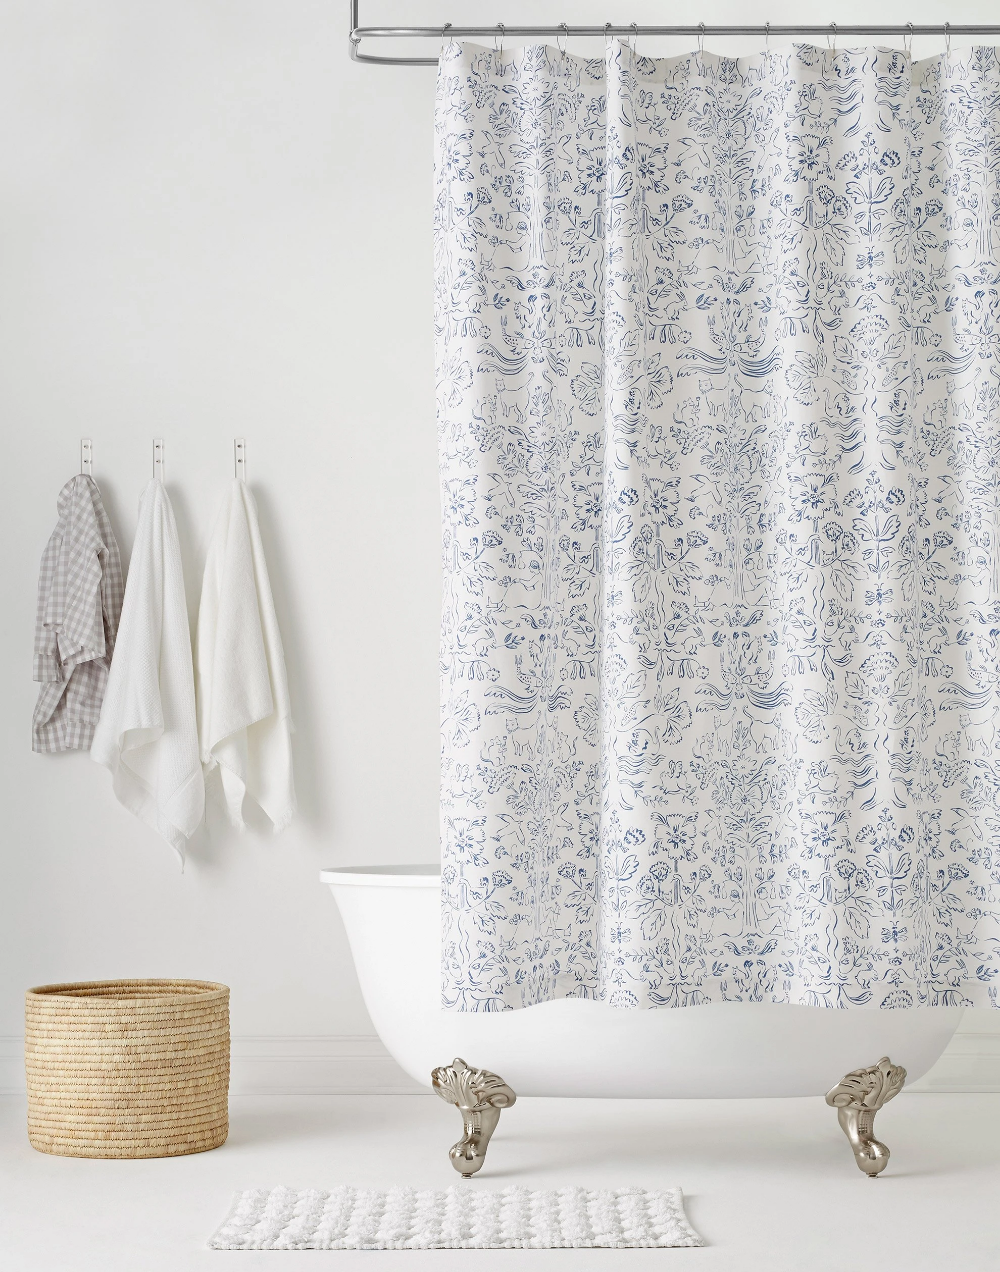 Photo of Storyline (Delft Blue) Shower Curtain